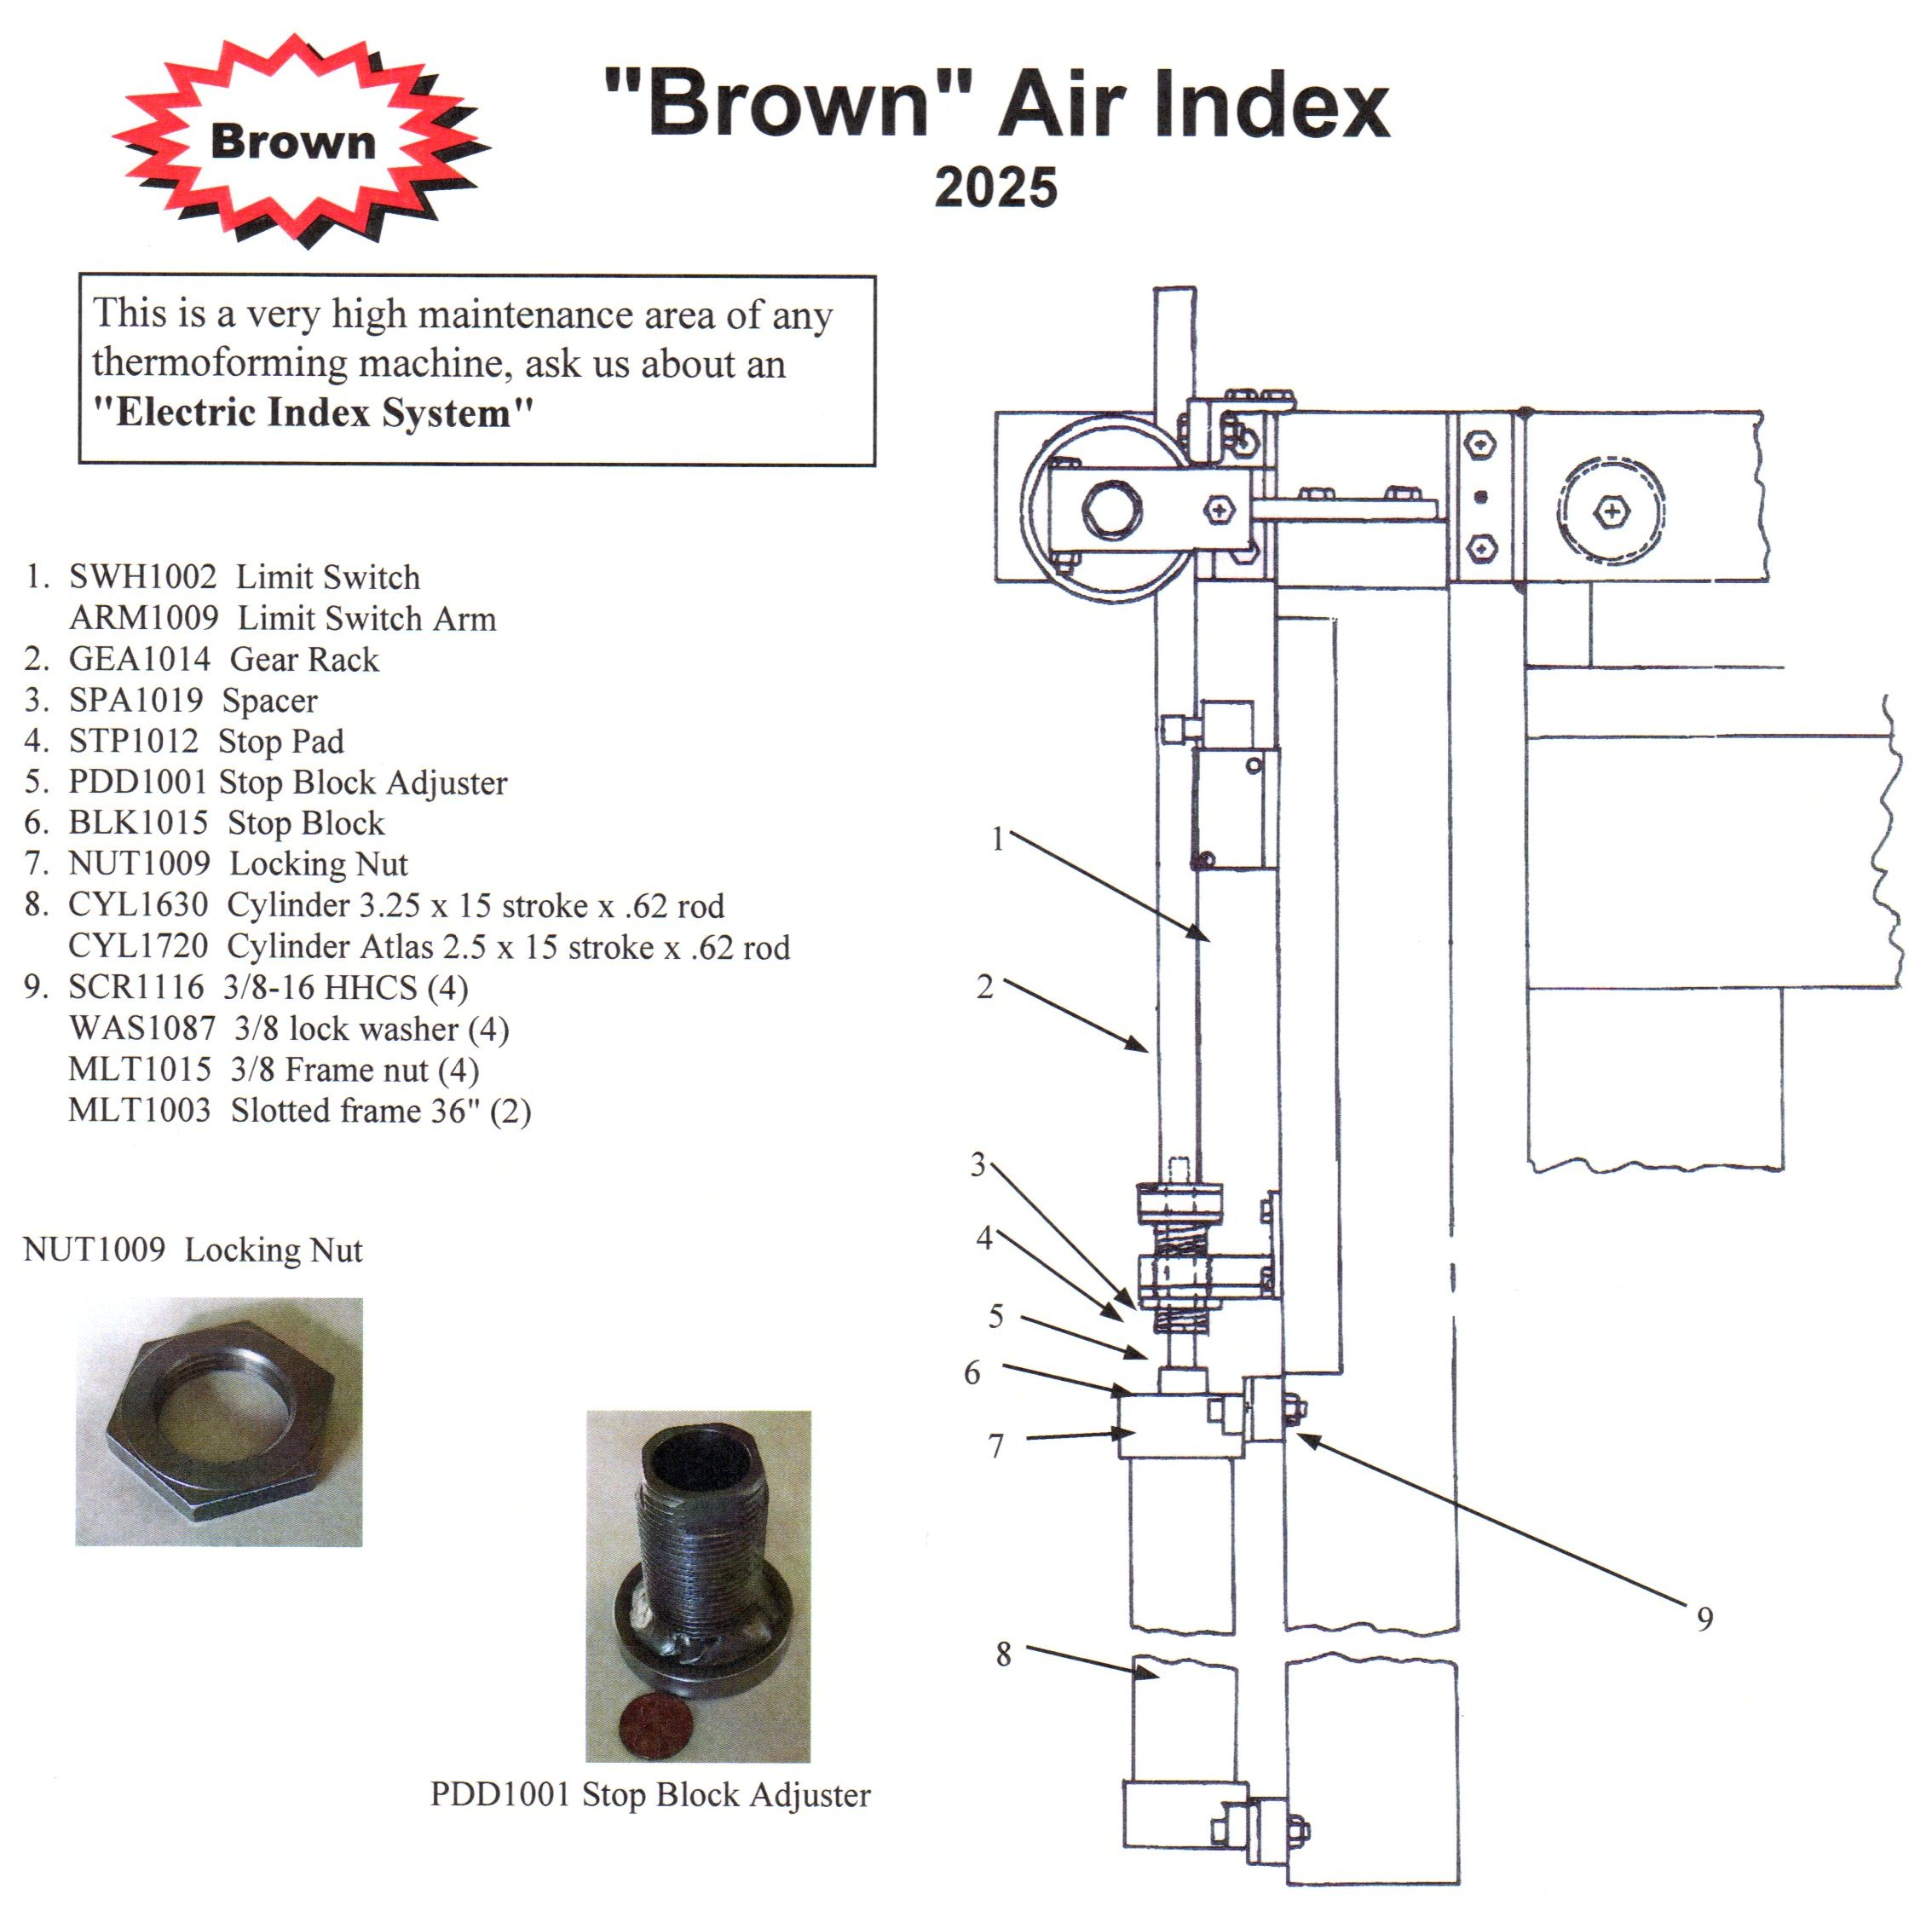 Brown Air Index 2025